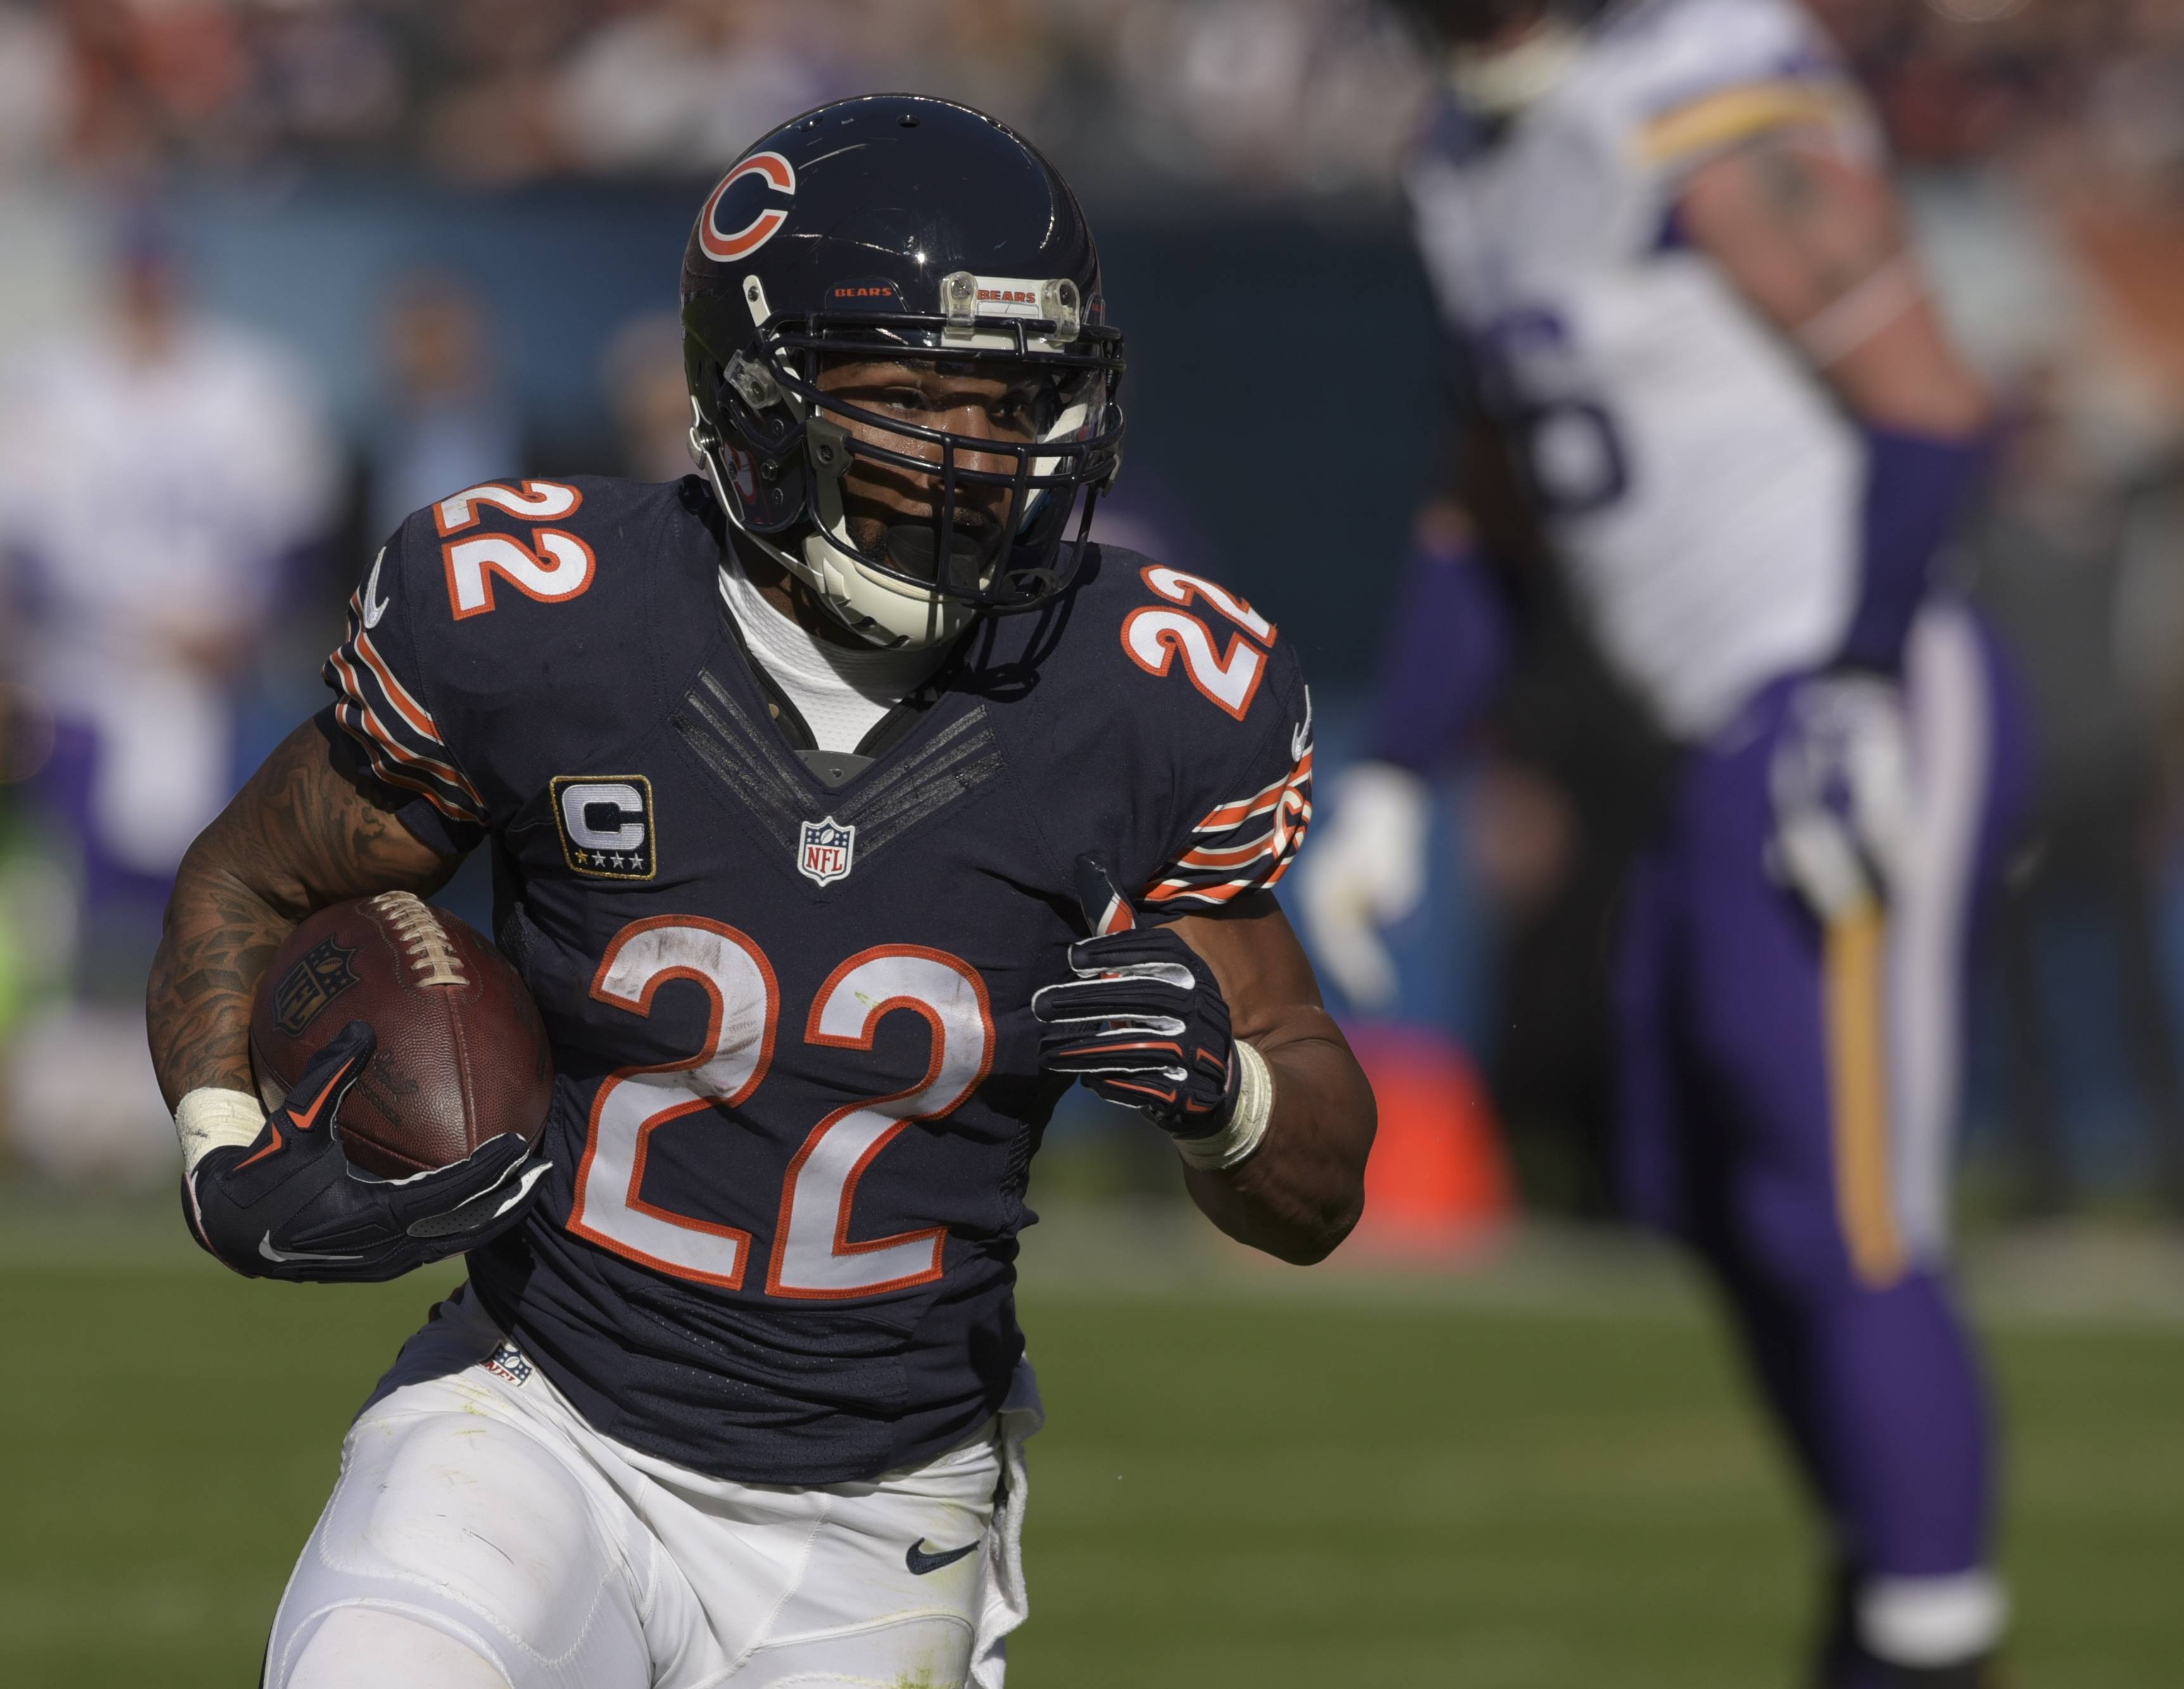 Chicago Bears running back Matt Forte gains some yards during the Bears 20-23 loss at Soldier Field Sunday.